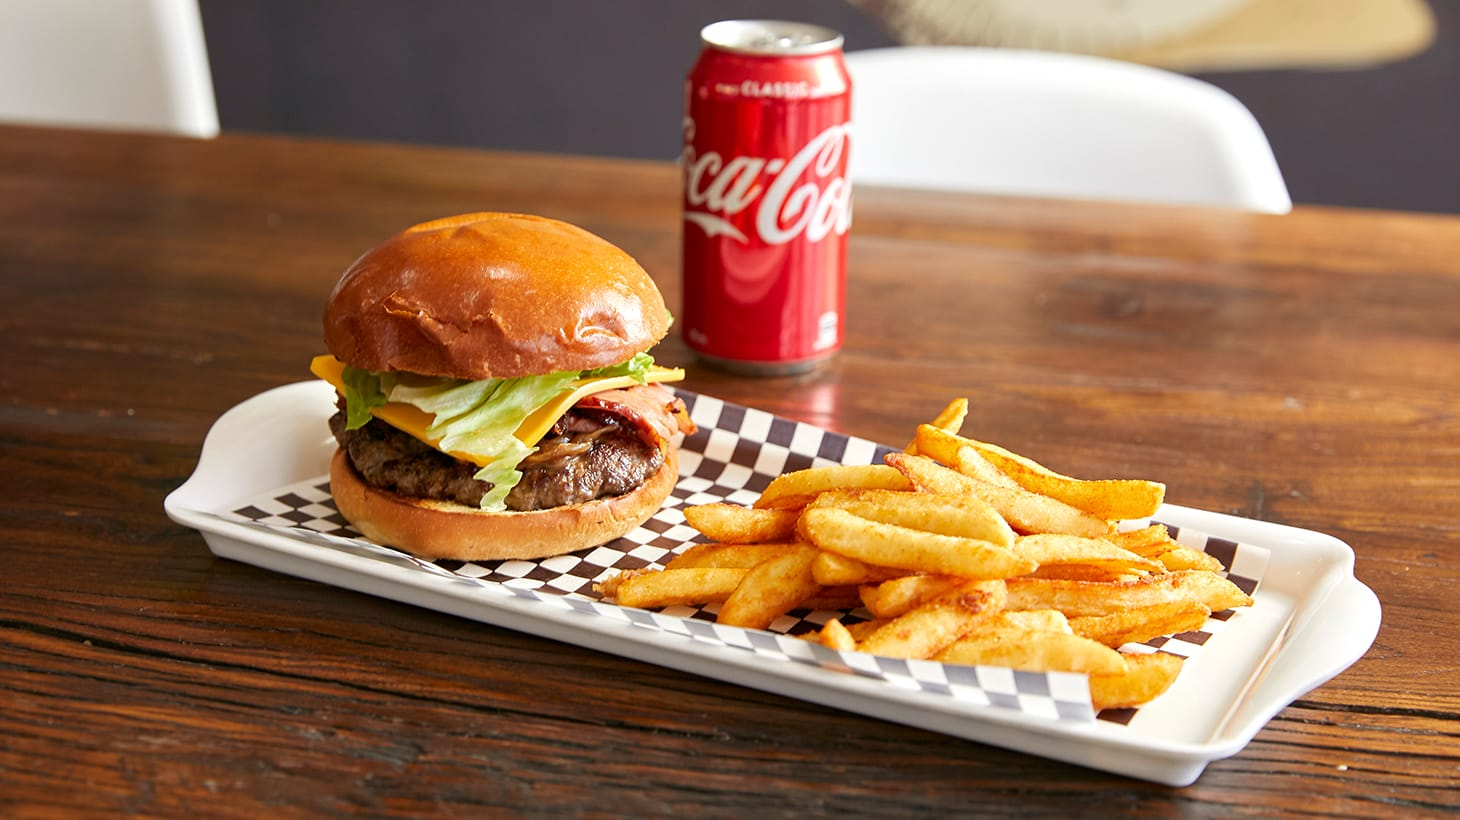 Tuck Into a Gourmet Burger, Chips and Drink Combo - My Burger Room